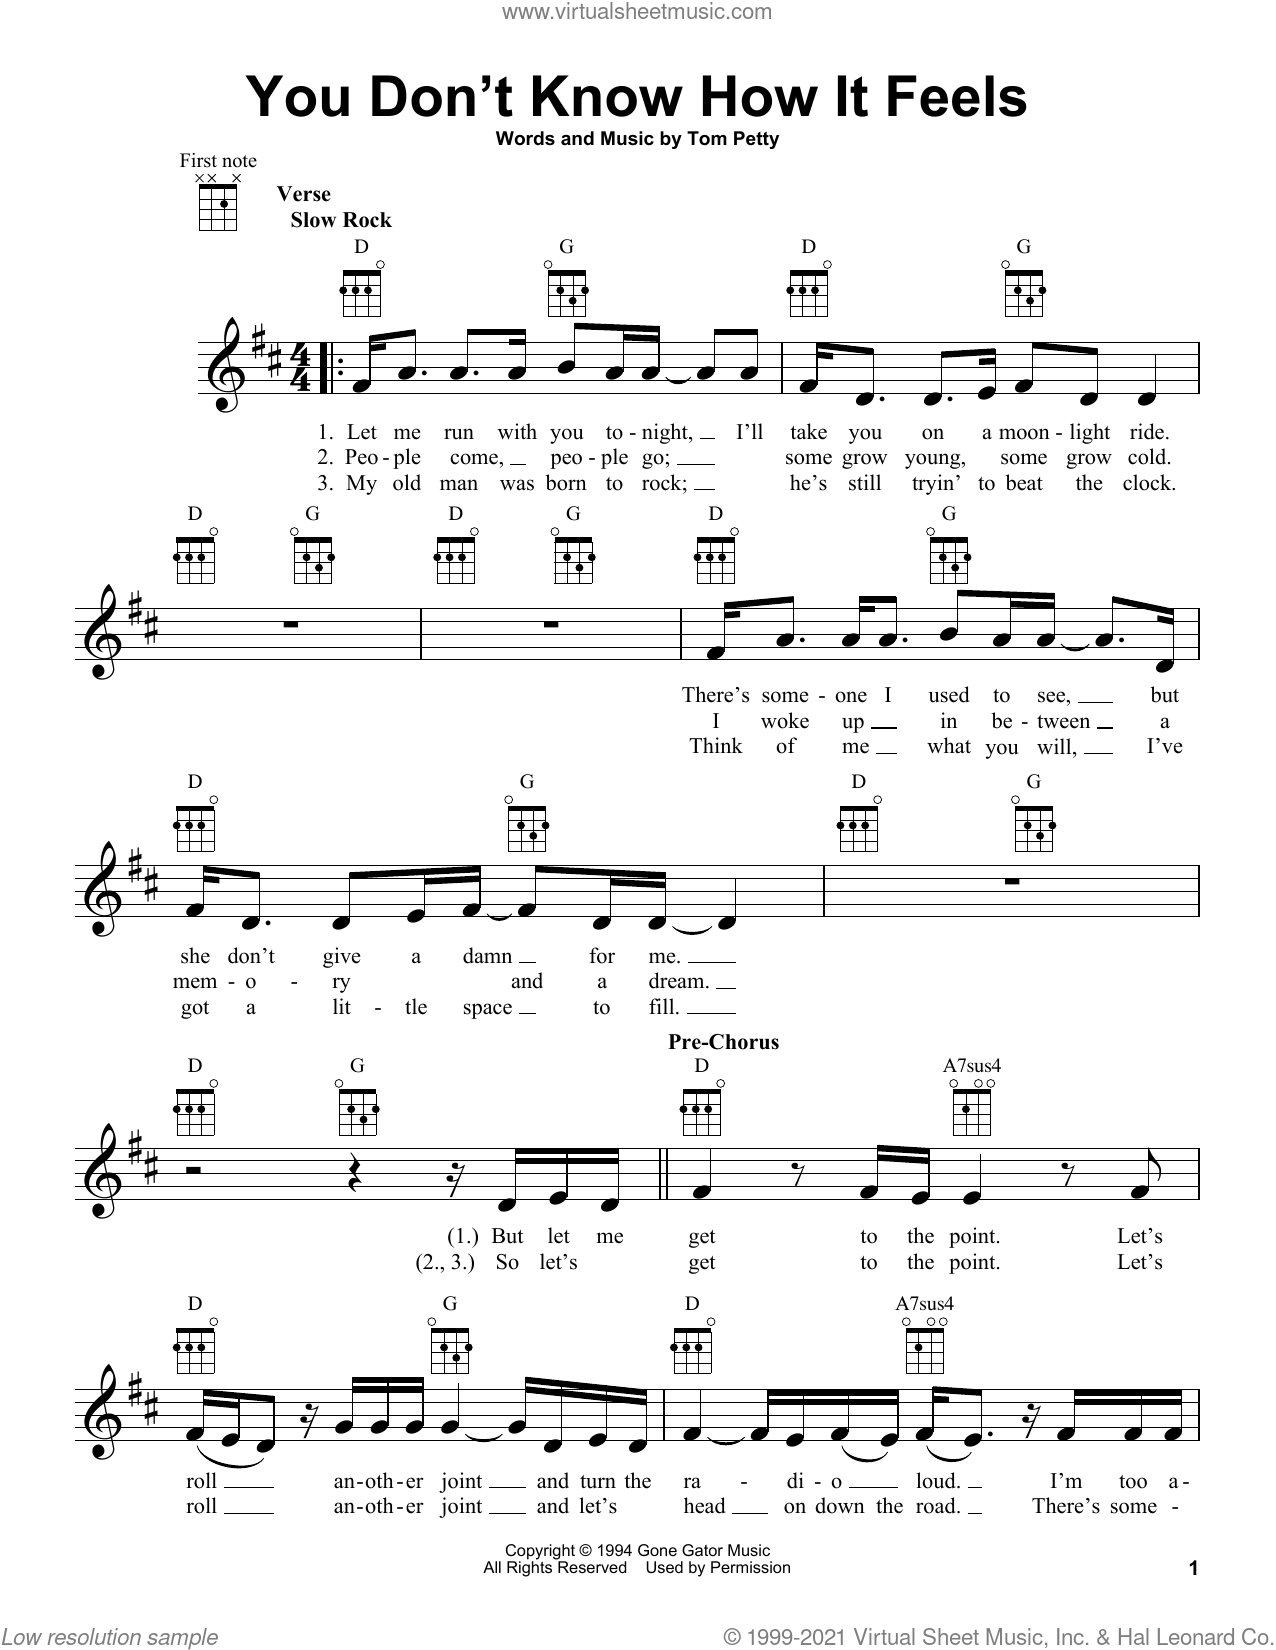 You Don't Know How It Feels sheet music for ukulele by Tom Petty, intermediate skill level